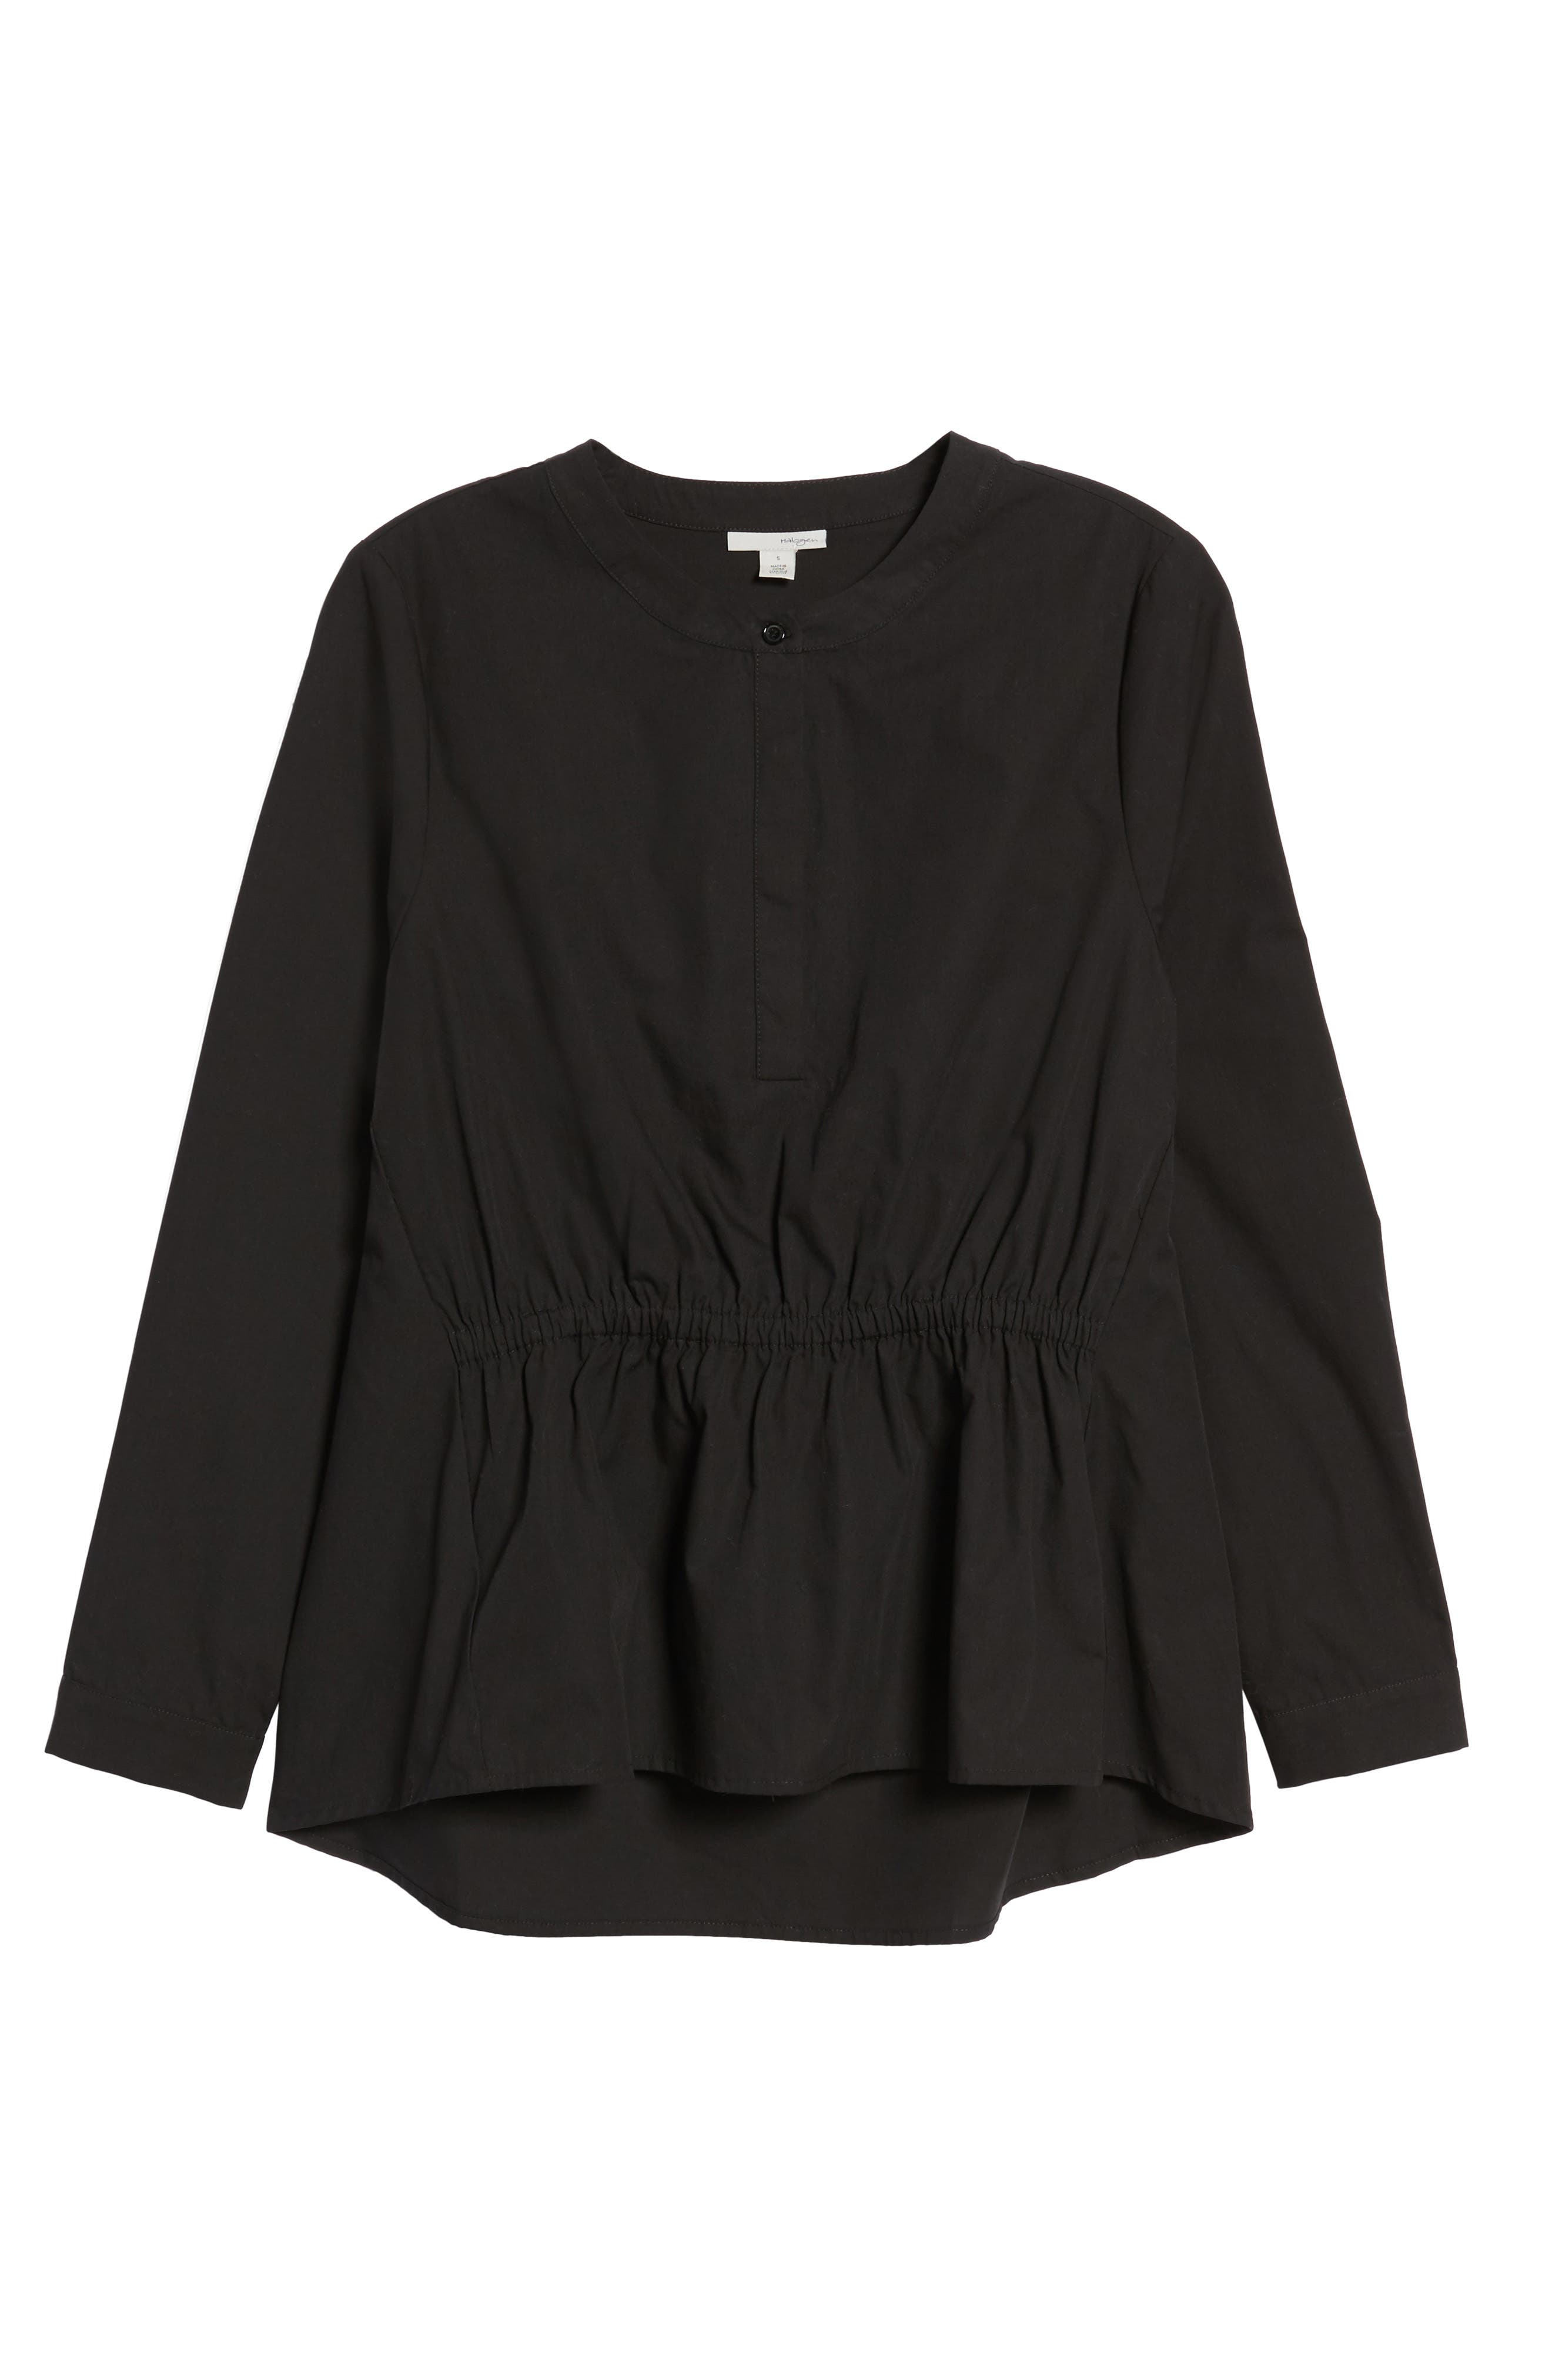 Cinched Front Peplum Top,                             Alternate thumbnail 6, color,                             001